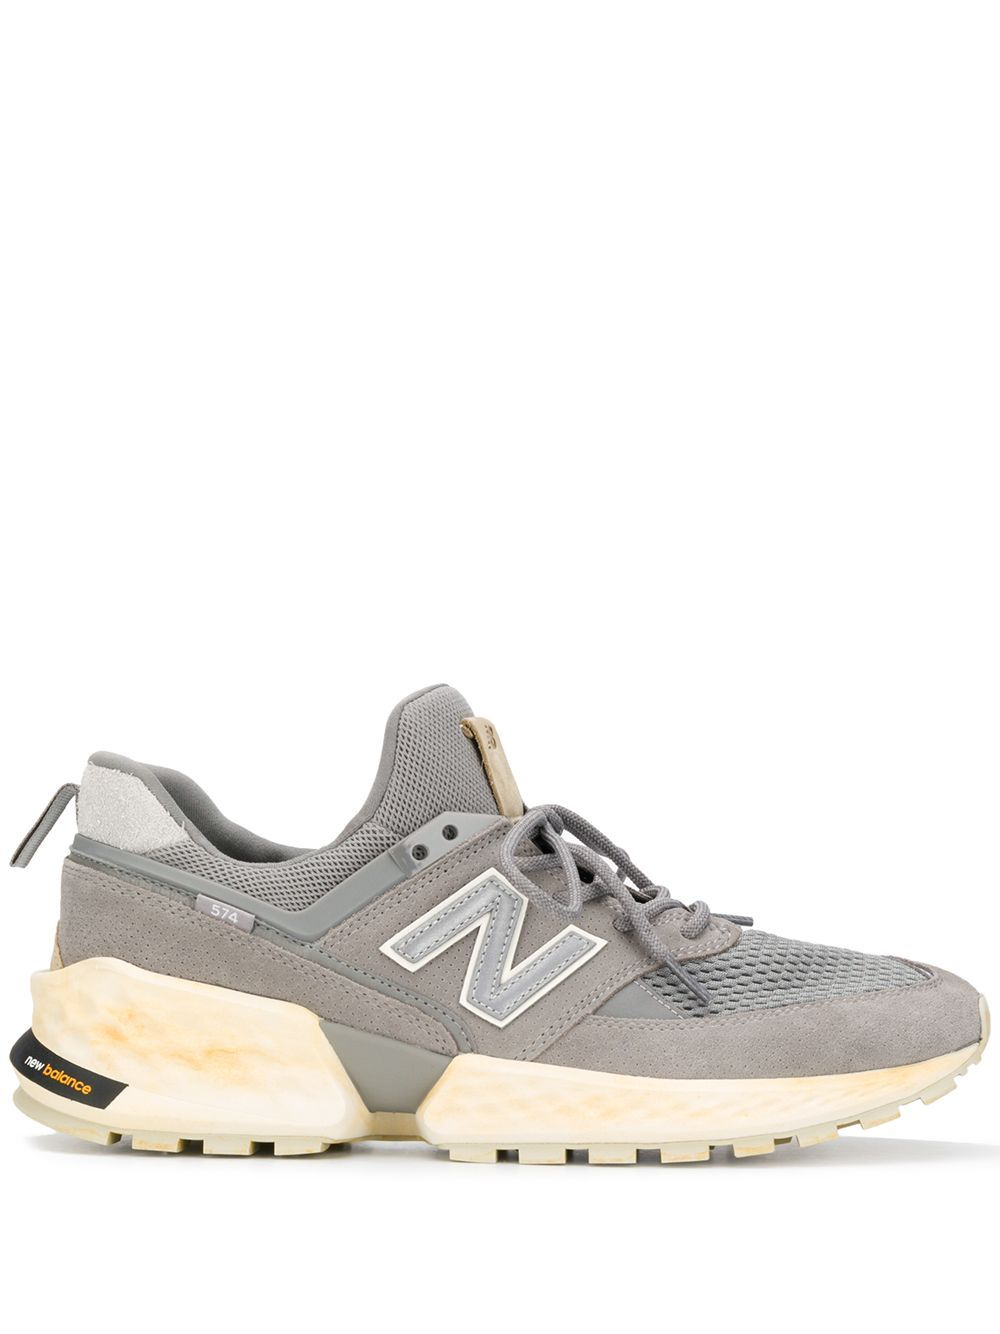 New balance 574 sport sneakers grey in 2020 New